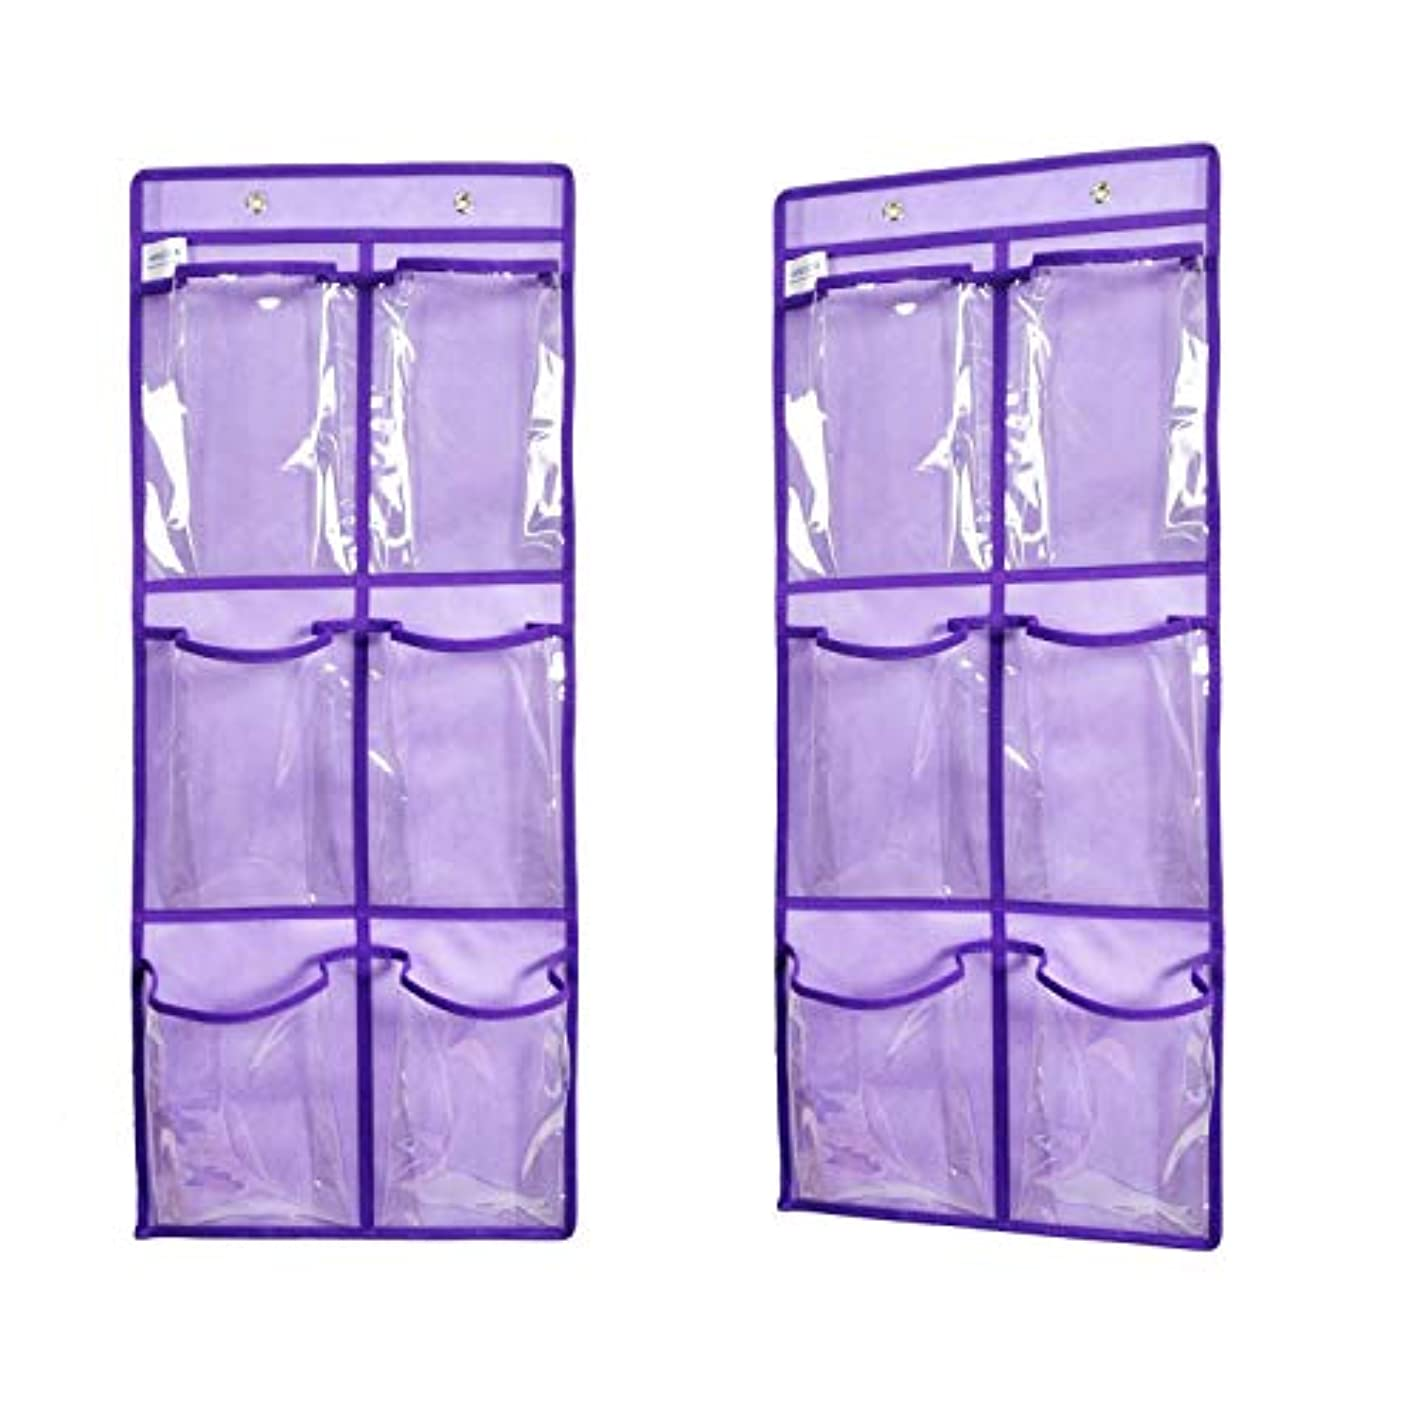 ANIZER Over The Door Hanging Shoe Organizer Narrow Closet Door Shoe Storage 6 Large Clear Pockets Chart 2 Pack (Purple)